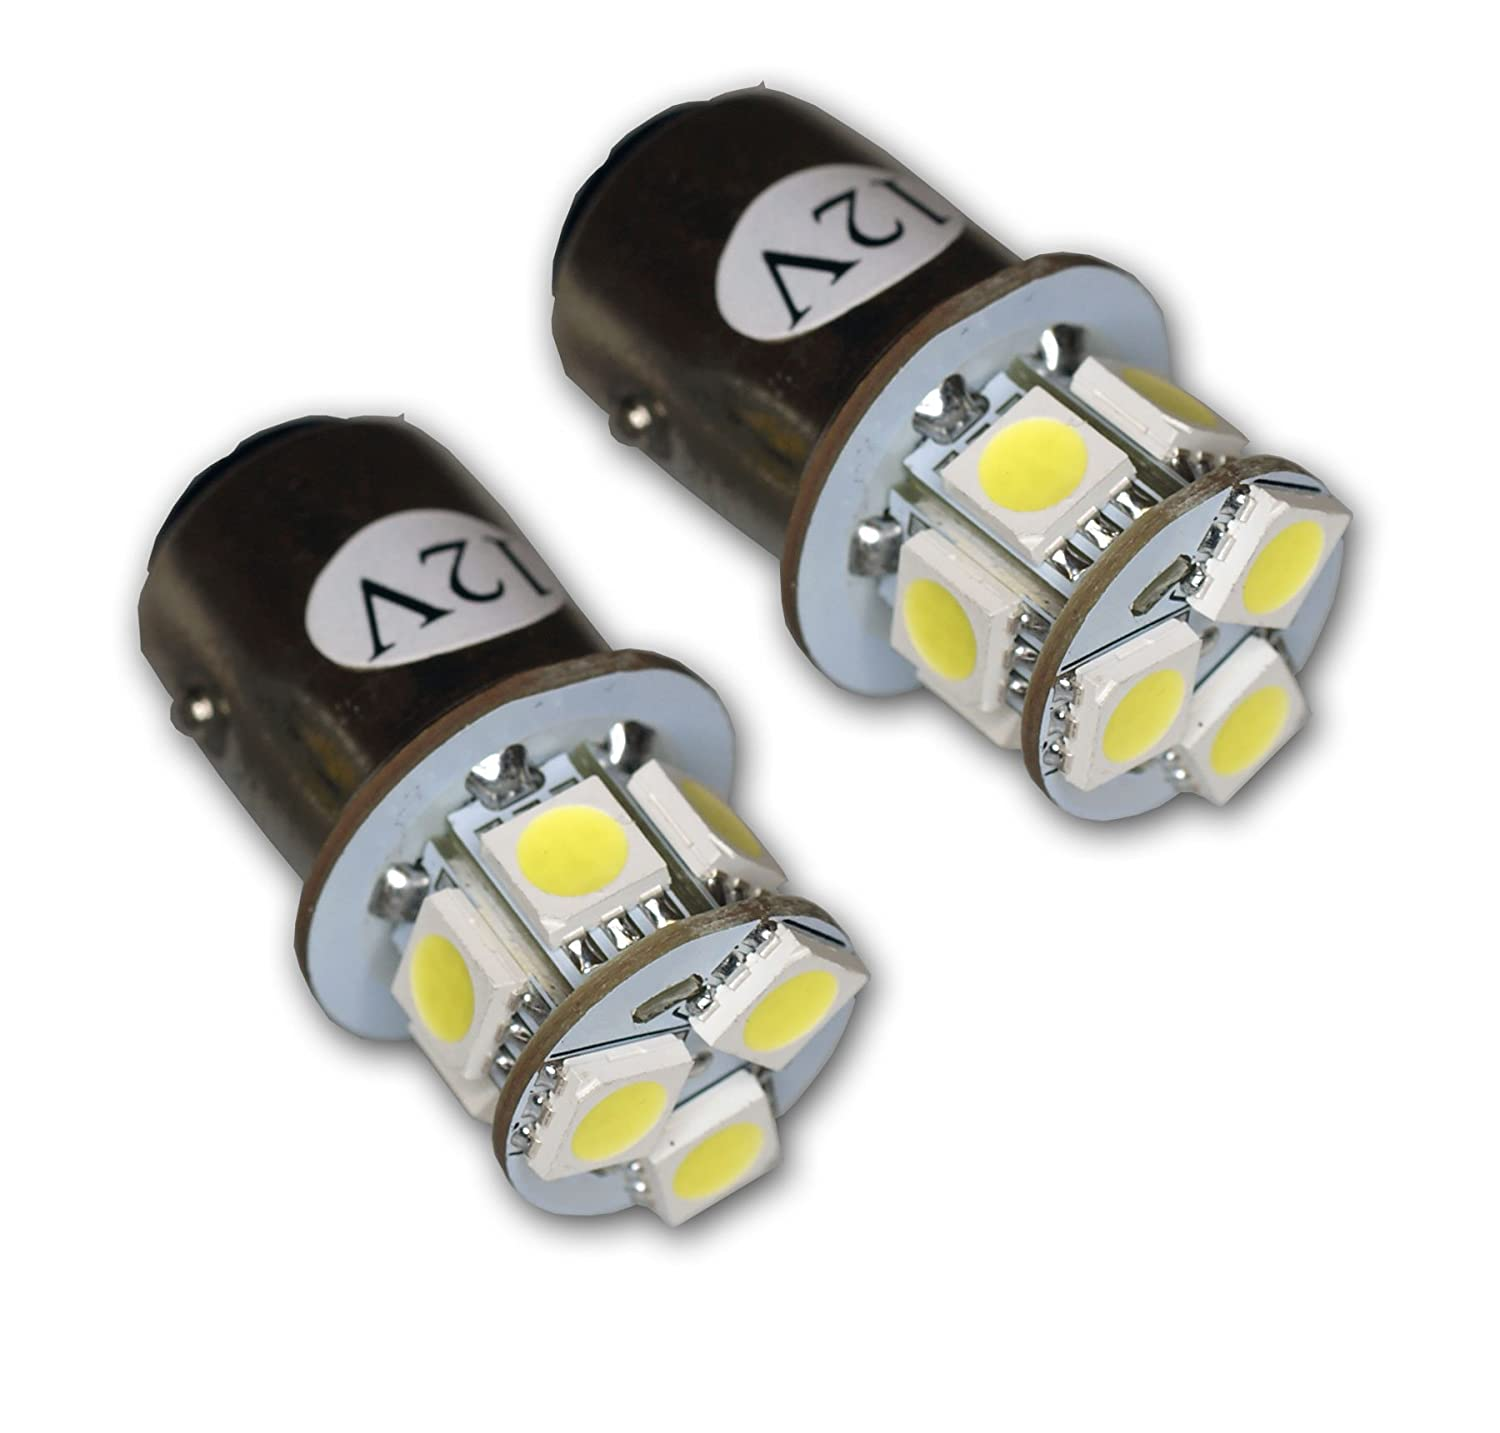 TuningPros LEDTL-1157-WS9 Tail Light LED Light Bulbs 1157, 9 SMD LED White 2-pc Set